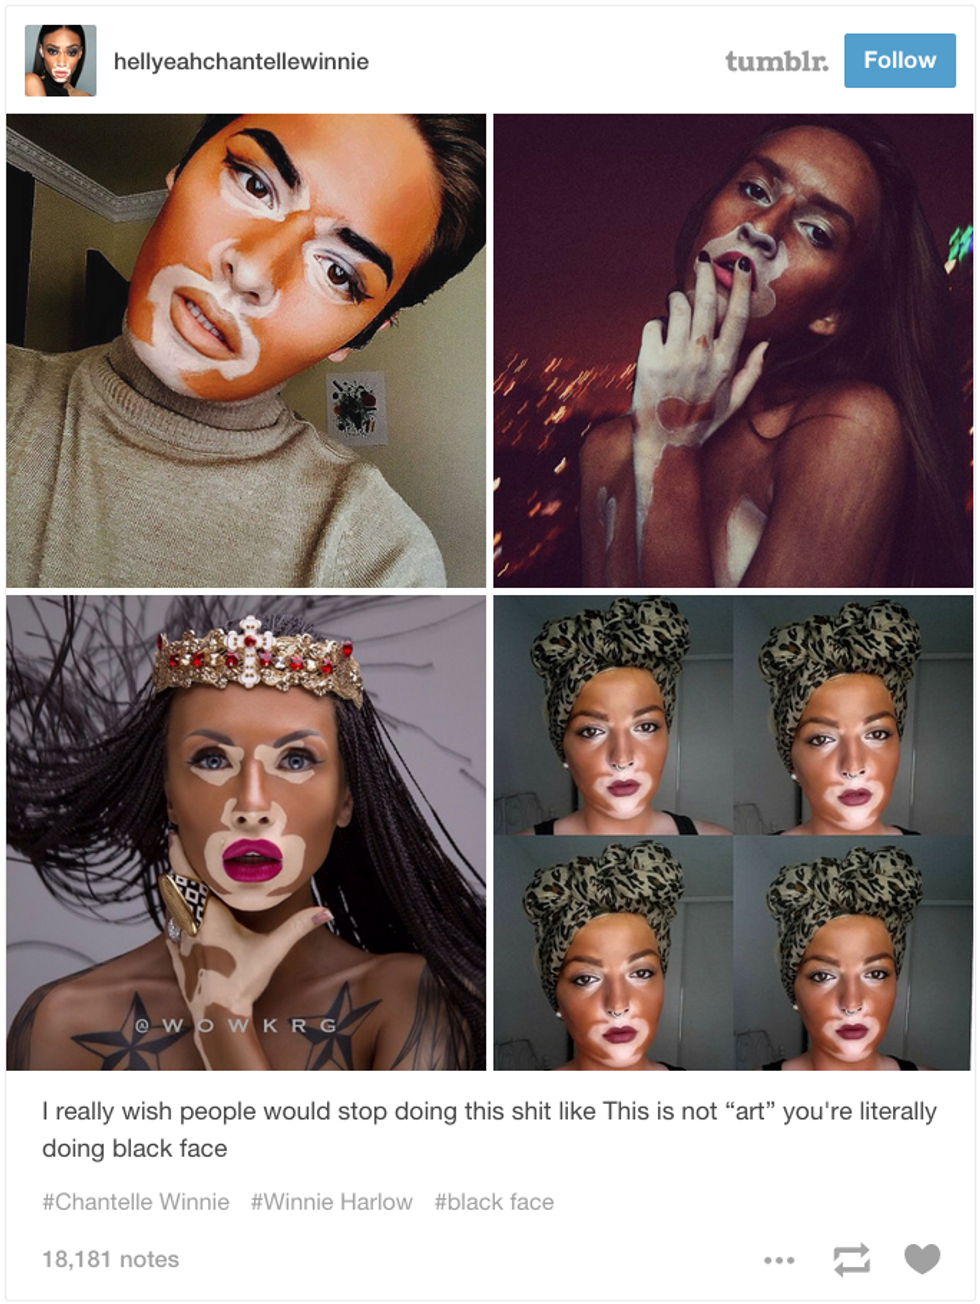 Model Winnie Harlow Defends Her Fans Against Blackface Accusations